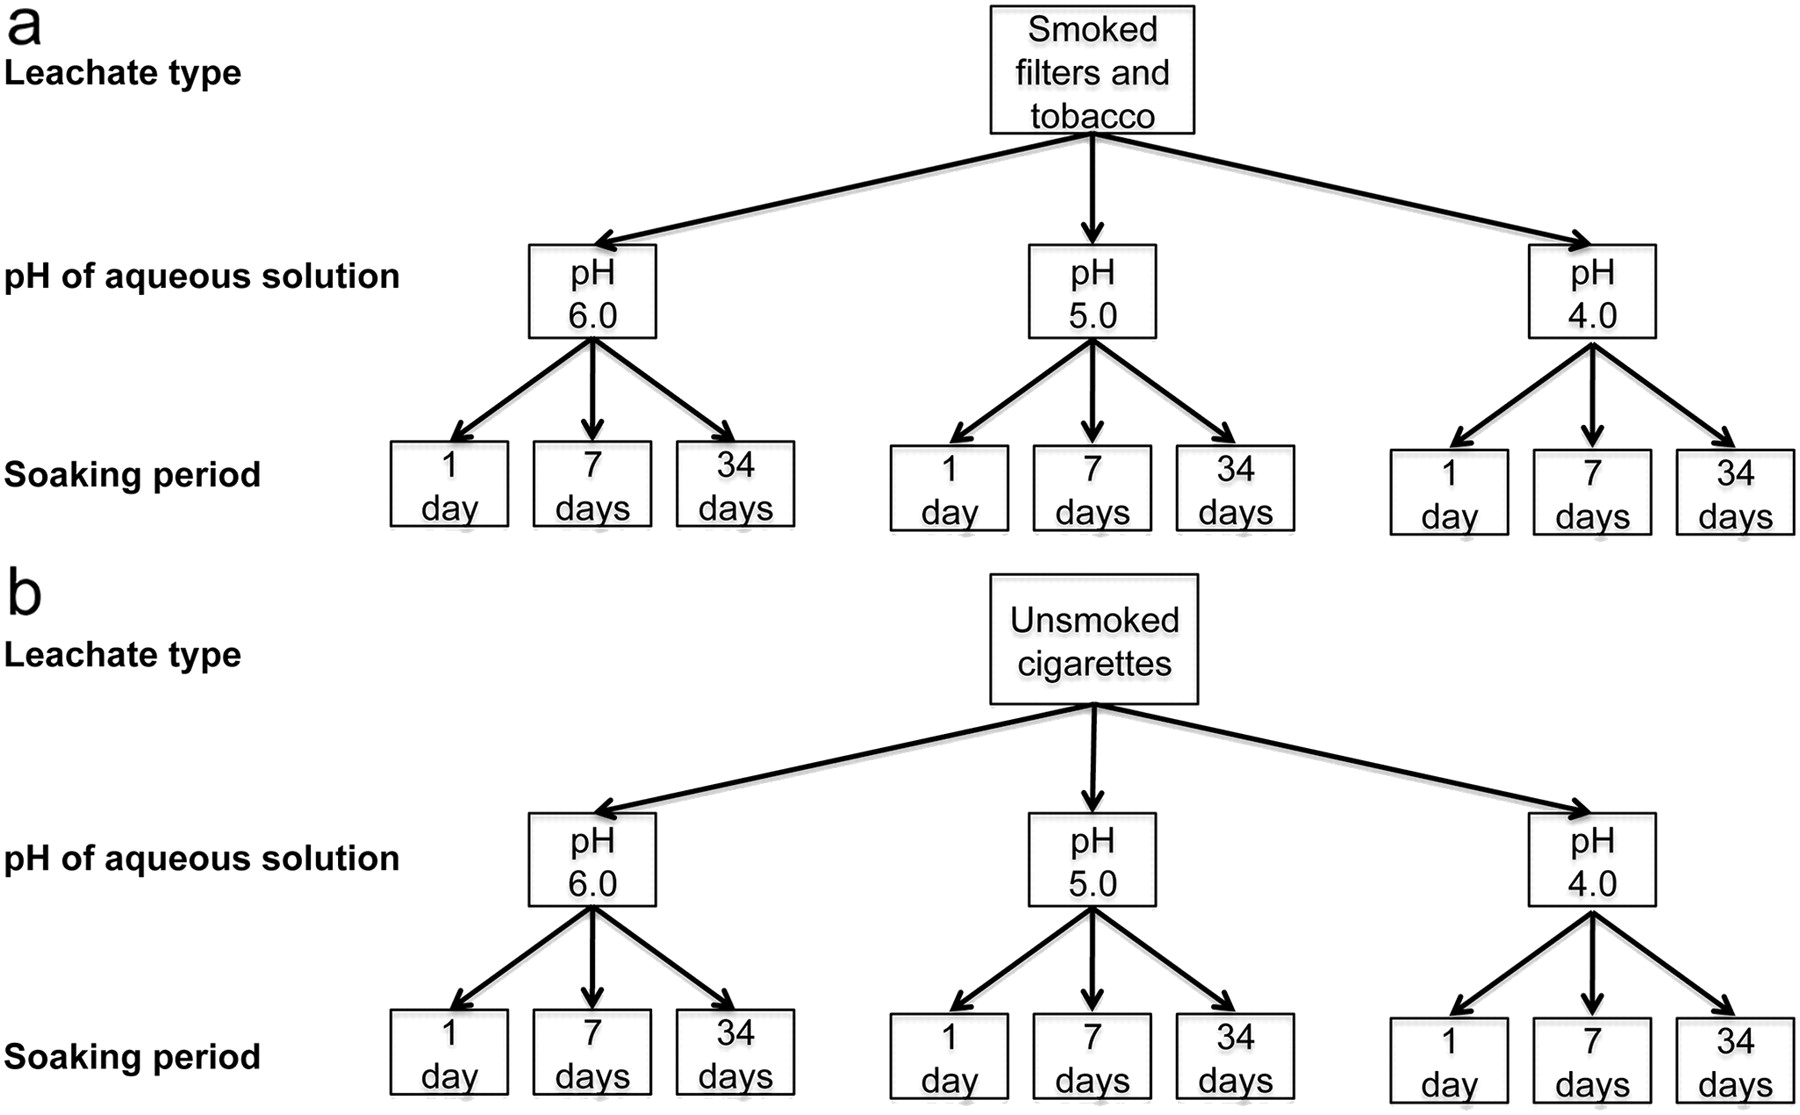 Analysis of metals leached from smoked cigarette litter